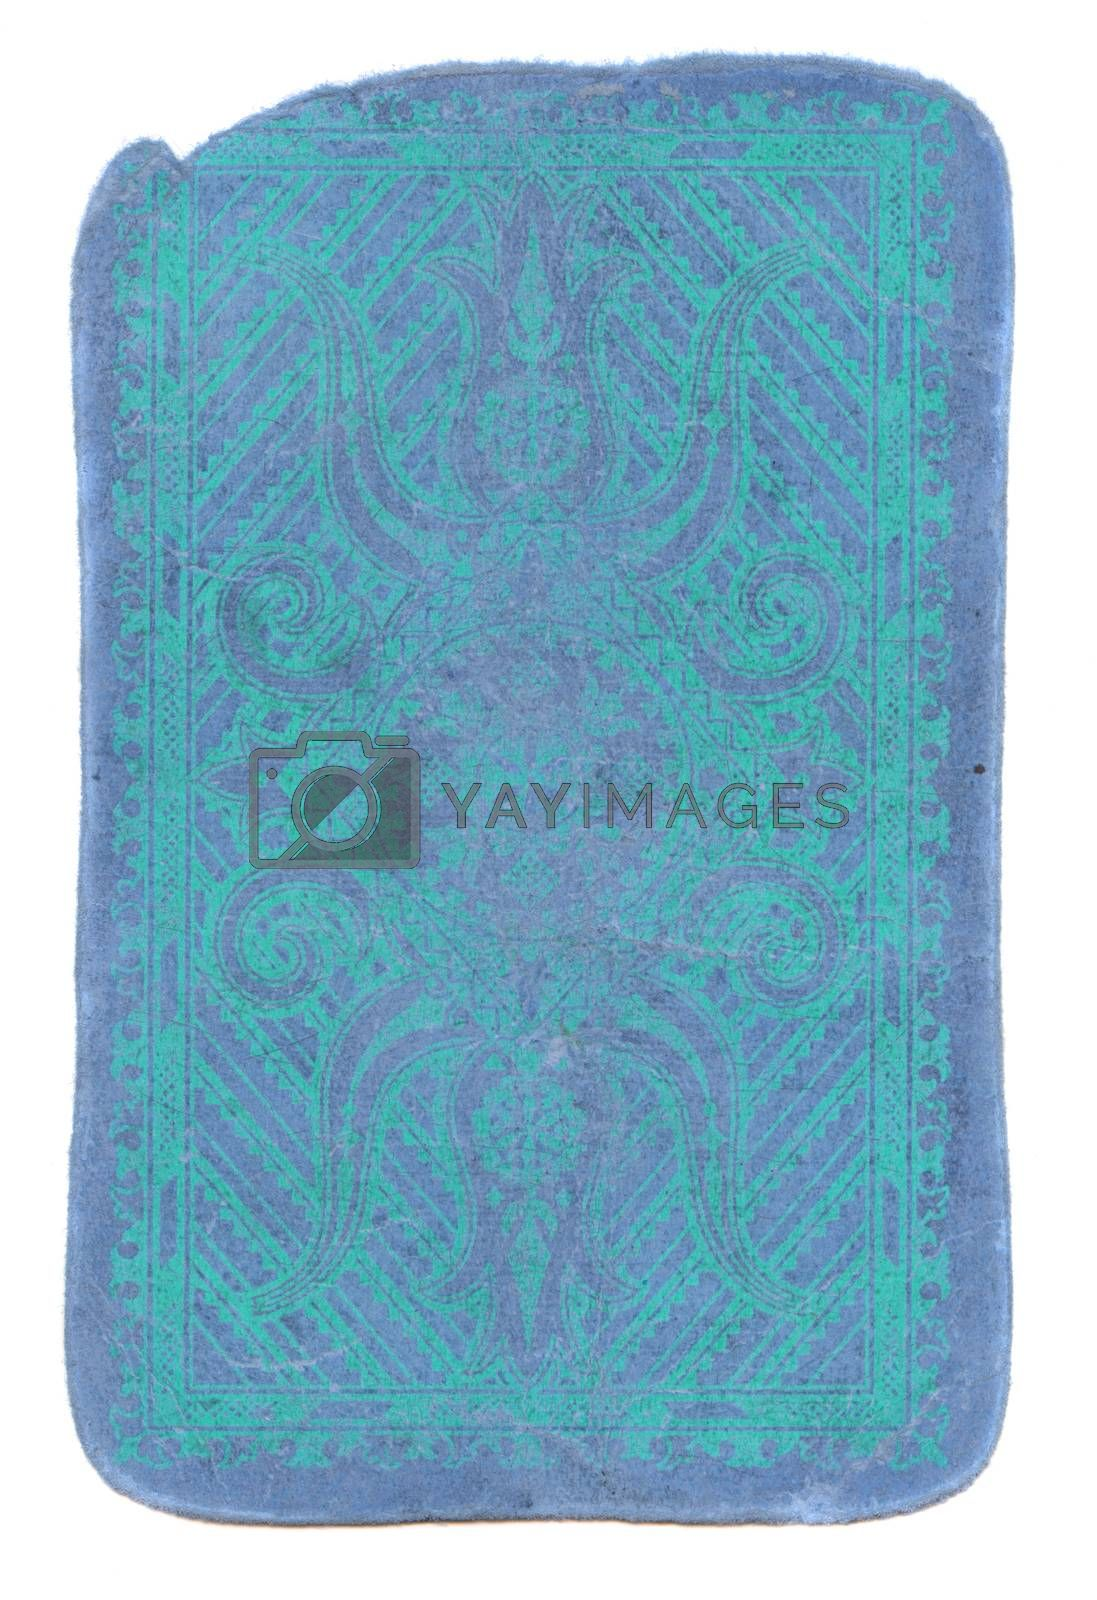 Royalty free image of Isolated used blue background of playing card cover by alis_photo